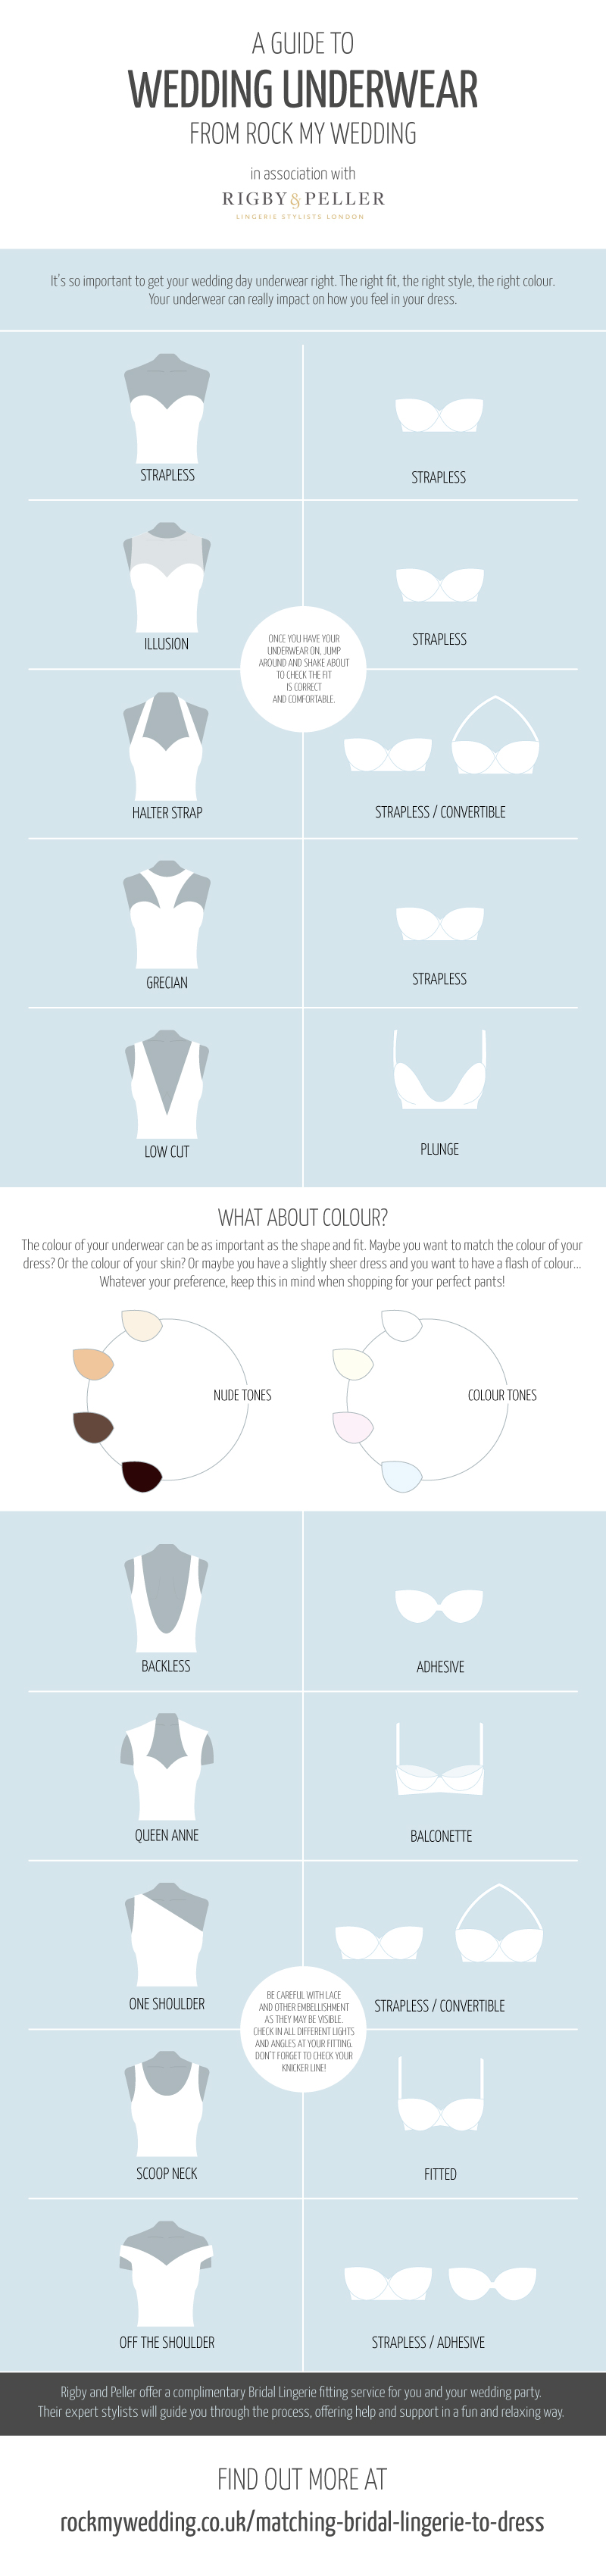 Guide To Bridal Underwear With Rigby & Peller